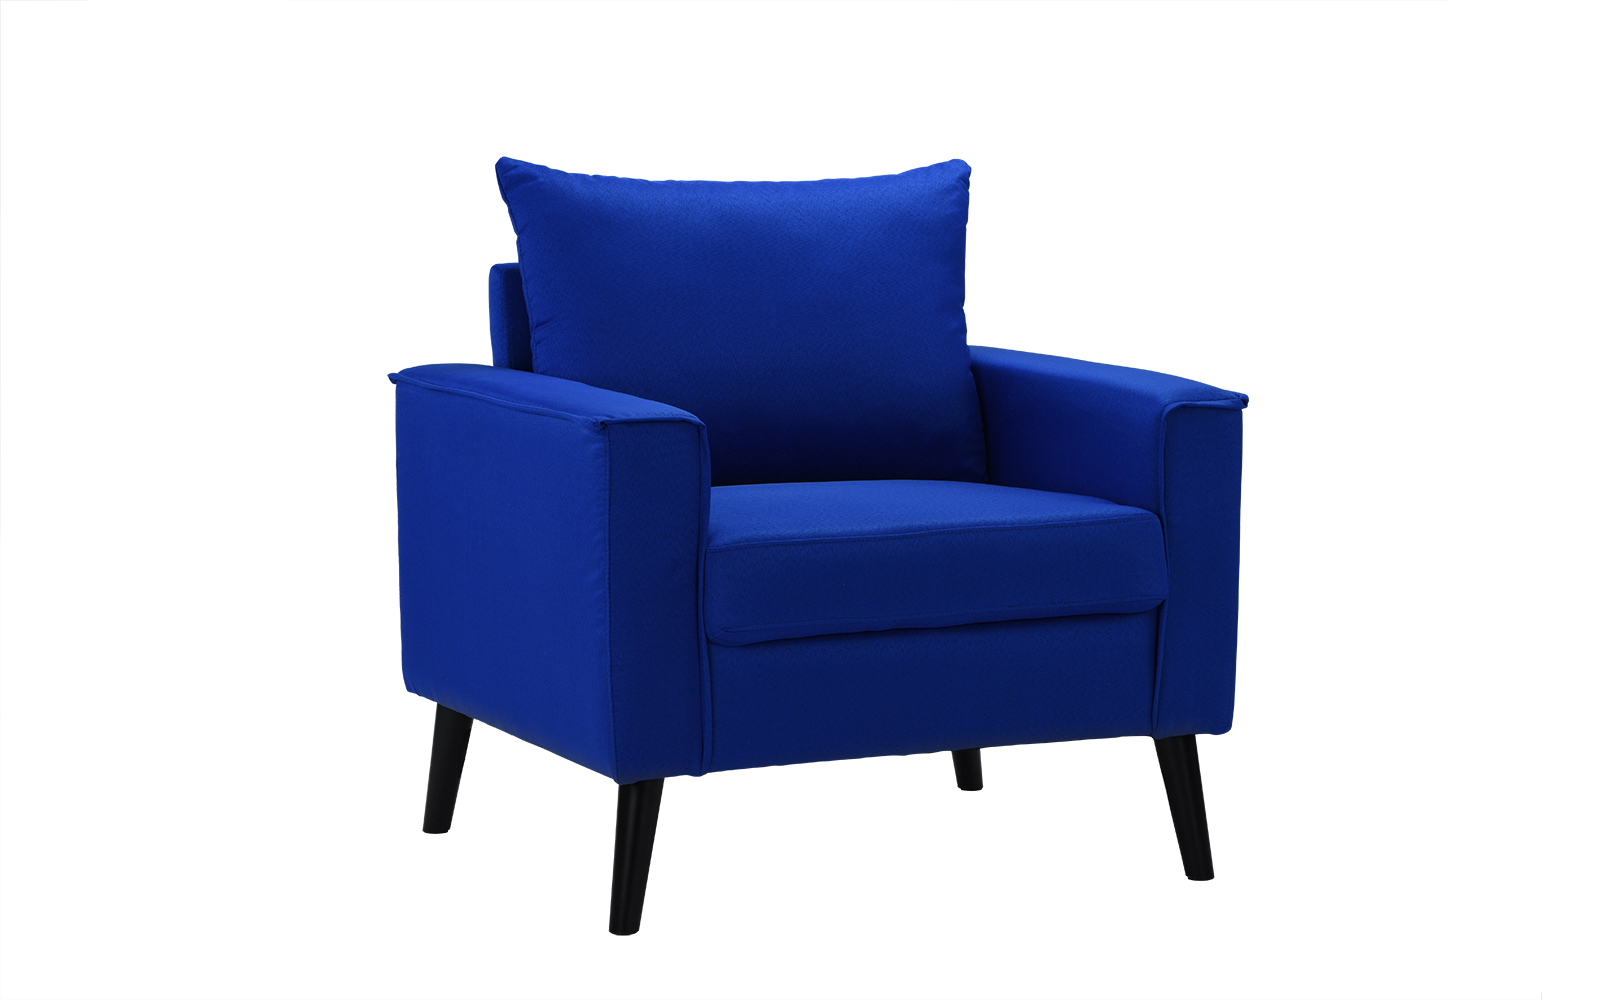 Modern Linen Fabric Armchair Living Room Accent Chair, Royal Blue by Casa Andrea Milano